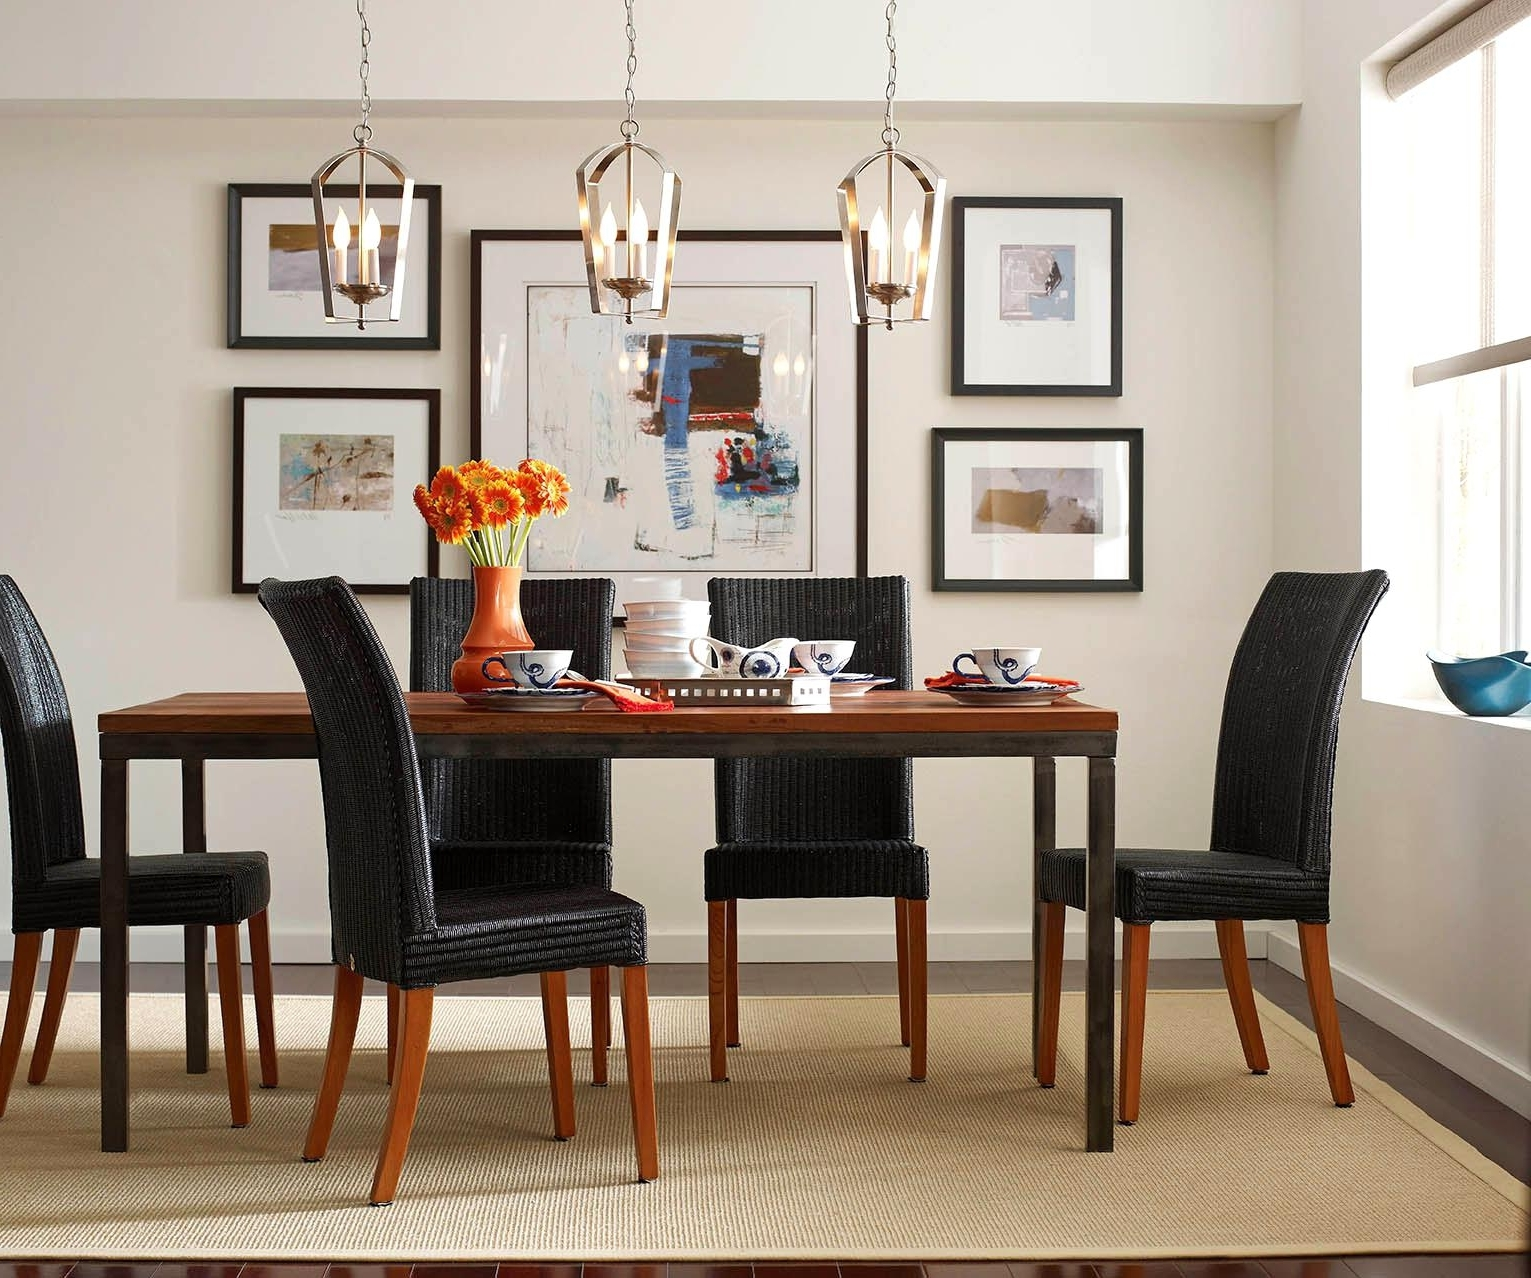 Dining Tables Ceiling Lights with regard to Well-known Enjoyable-Pendant-Lights-Dining-Room-Hanging-Delier-Dining-Room